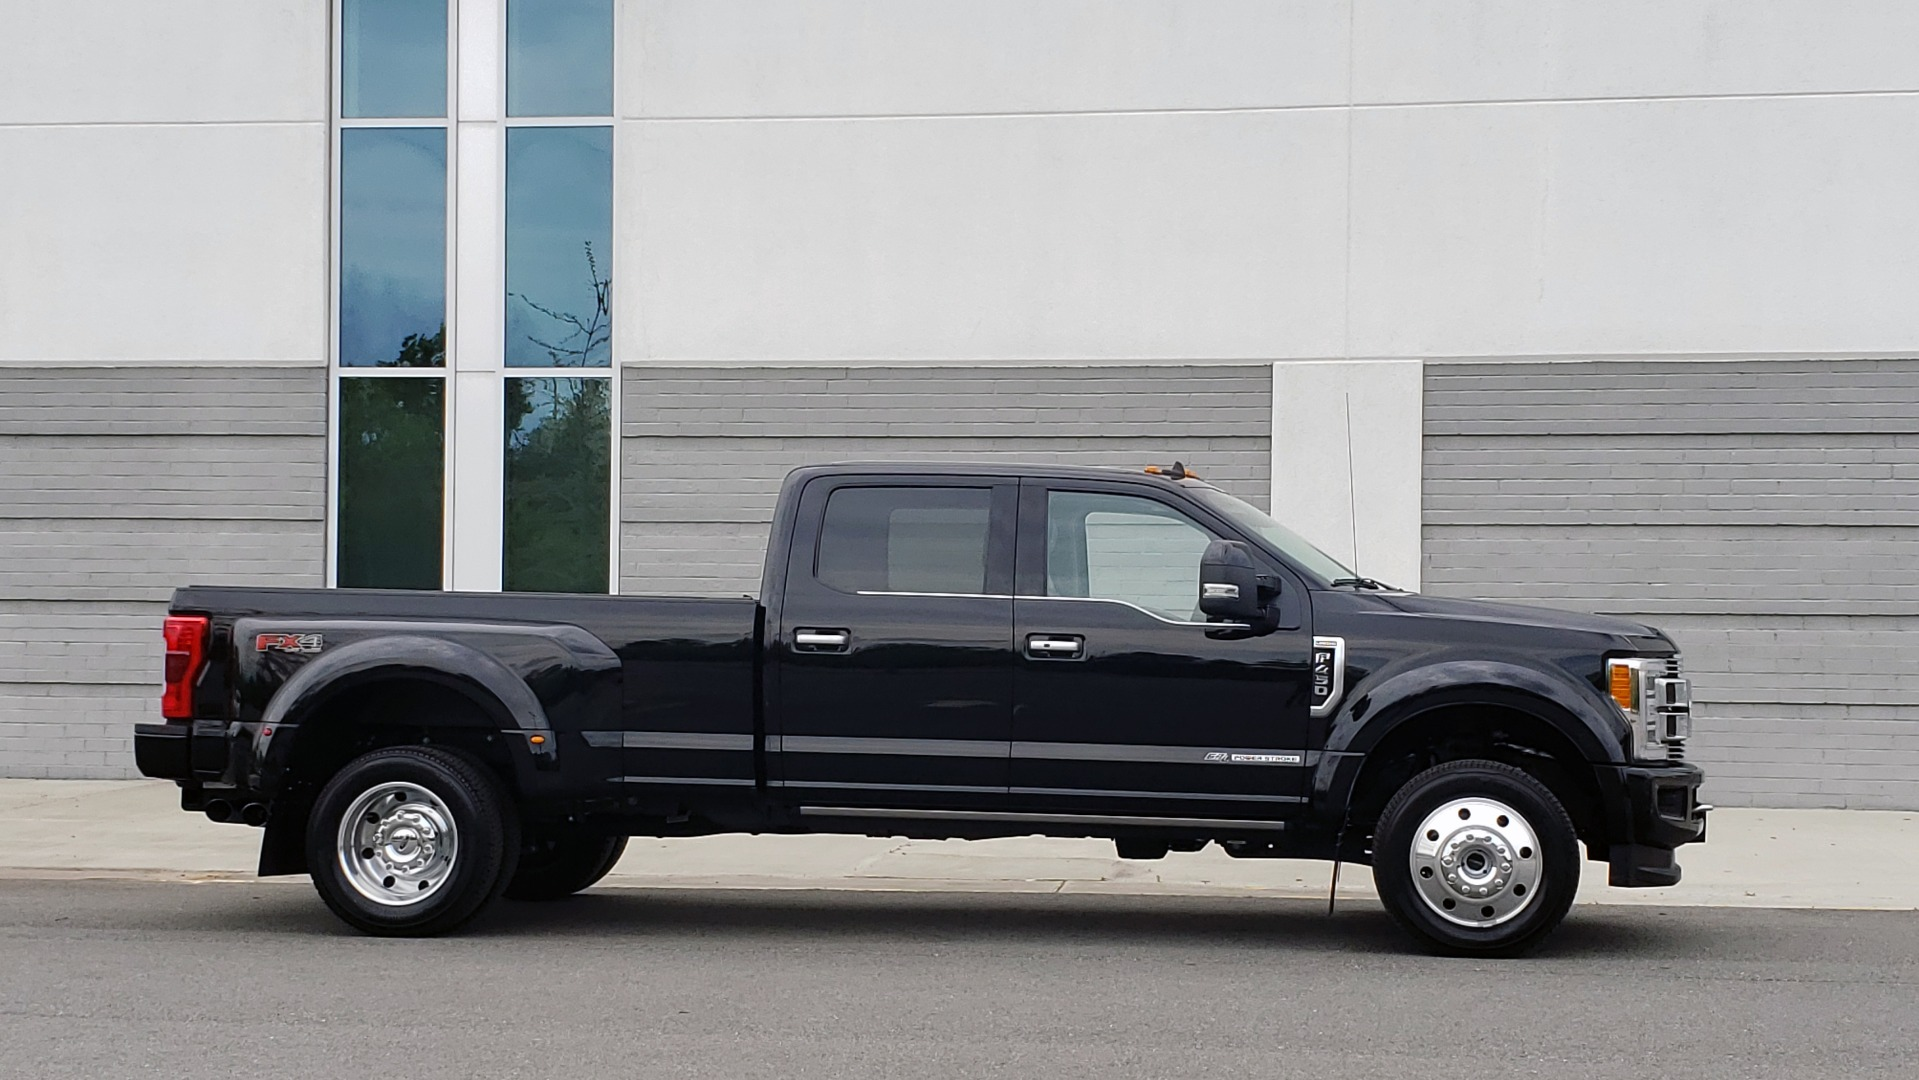 Used 2019 Ford SUPER DUTY F-450 DRW LIMITED / 4X4 / CREWCAB 176IN WB / LOADED / LOW MILES for sale Sold at Formula Imports in Charlotte NC 28227 6